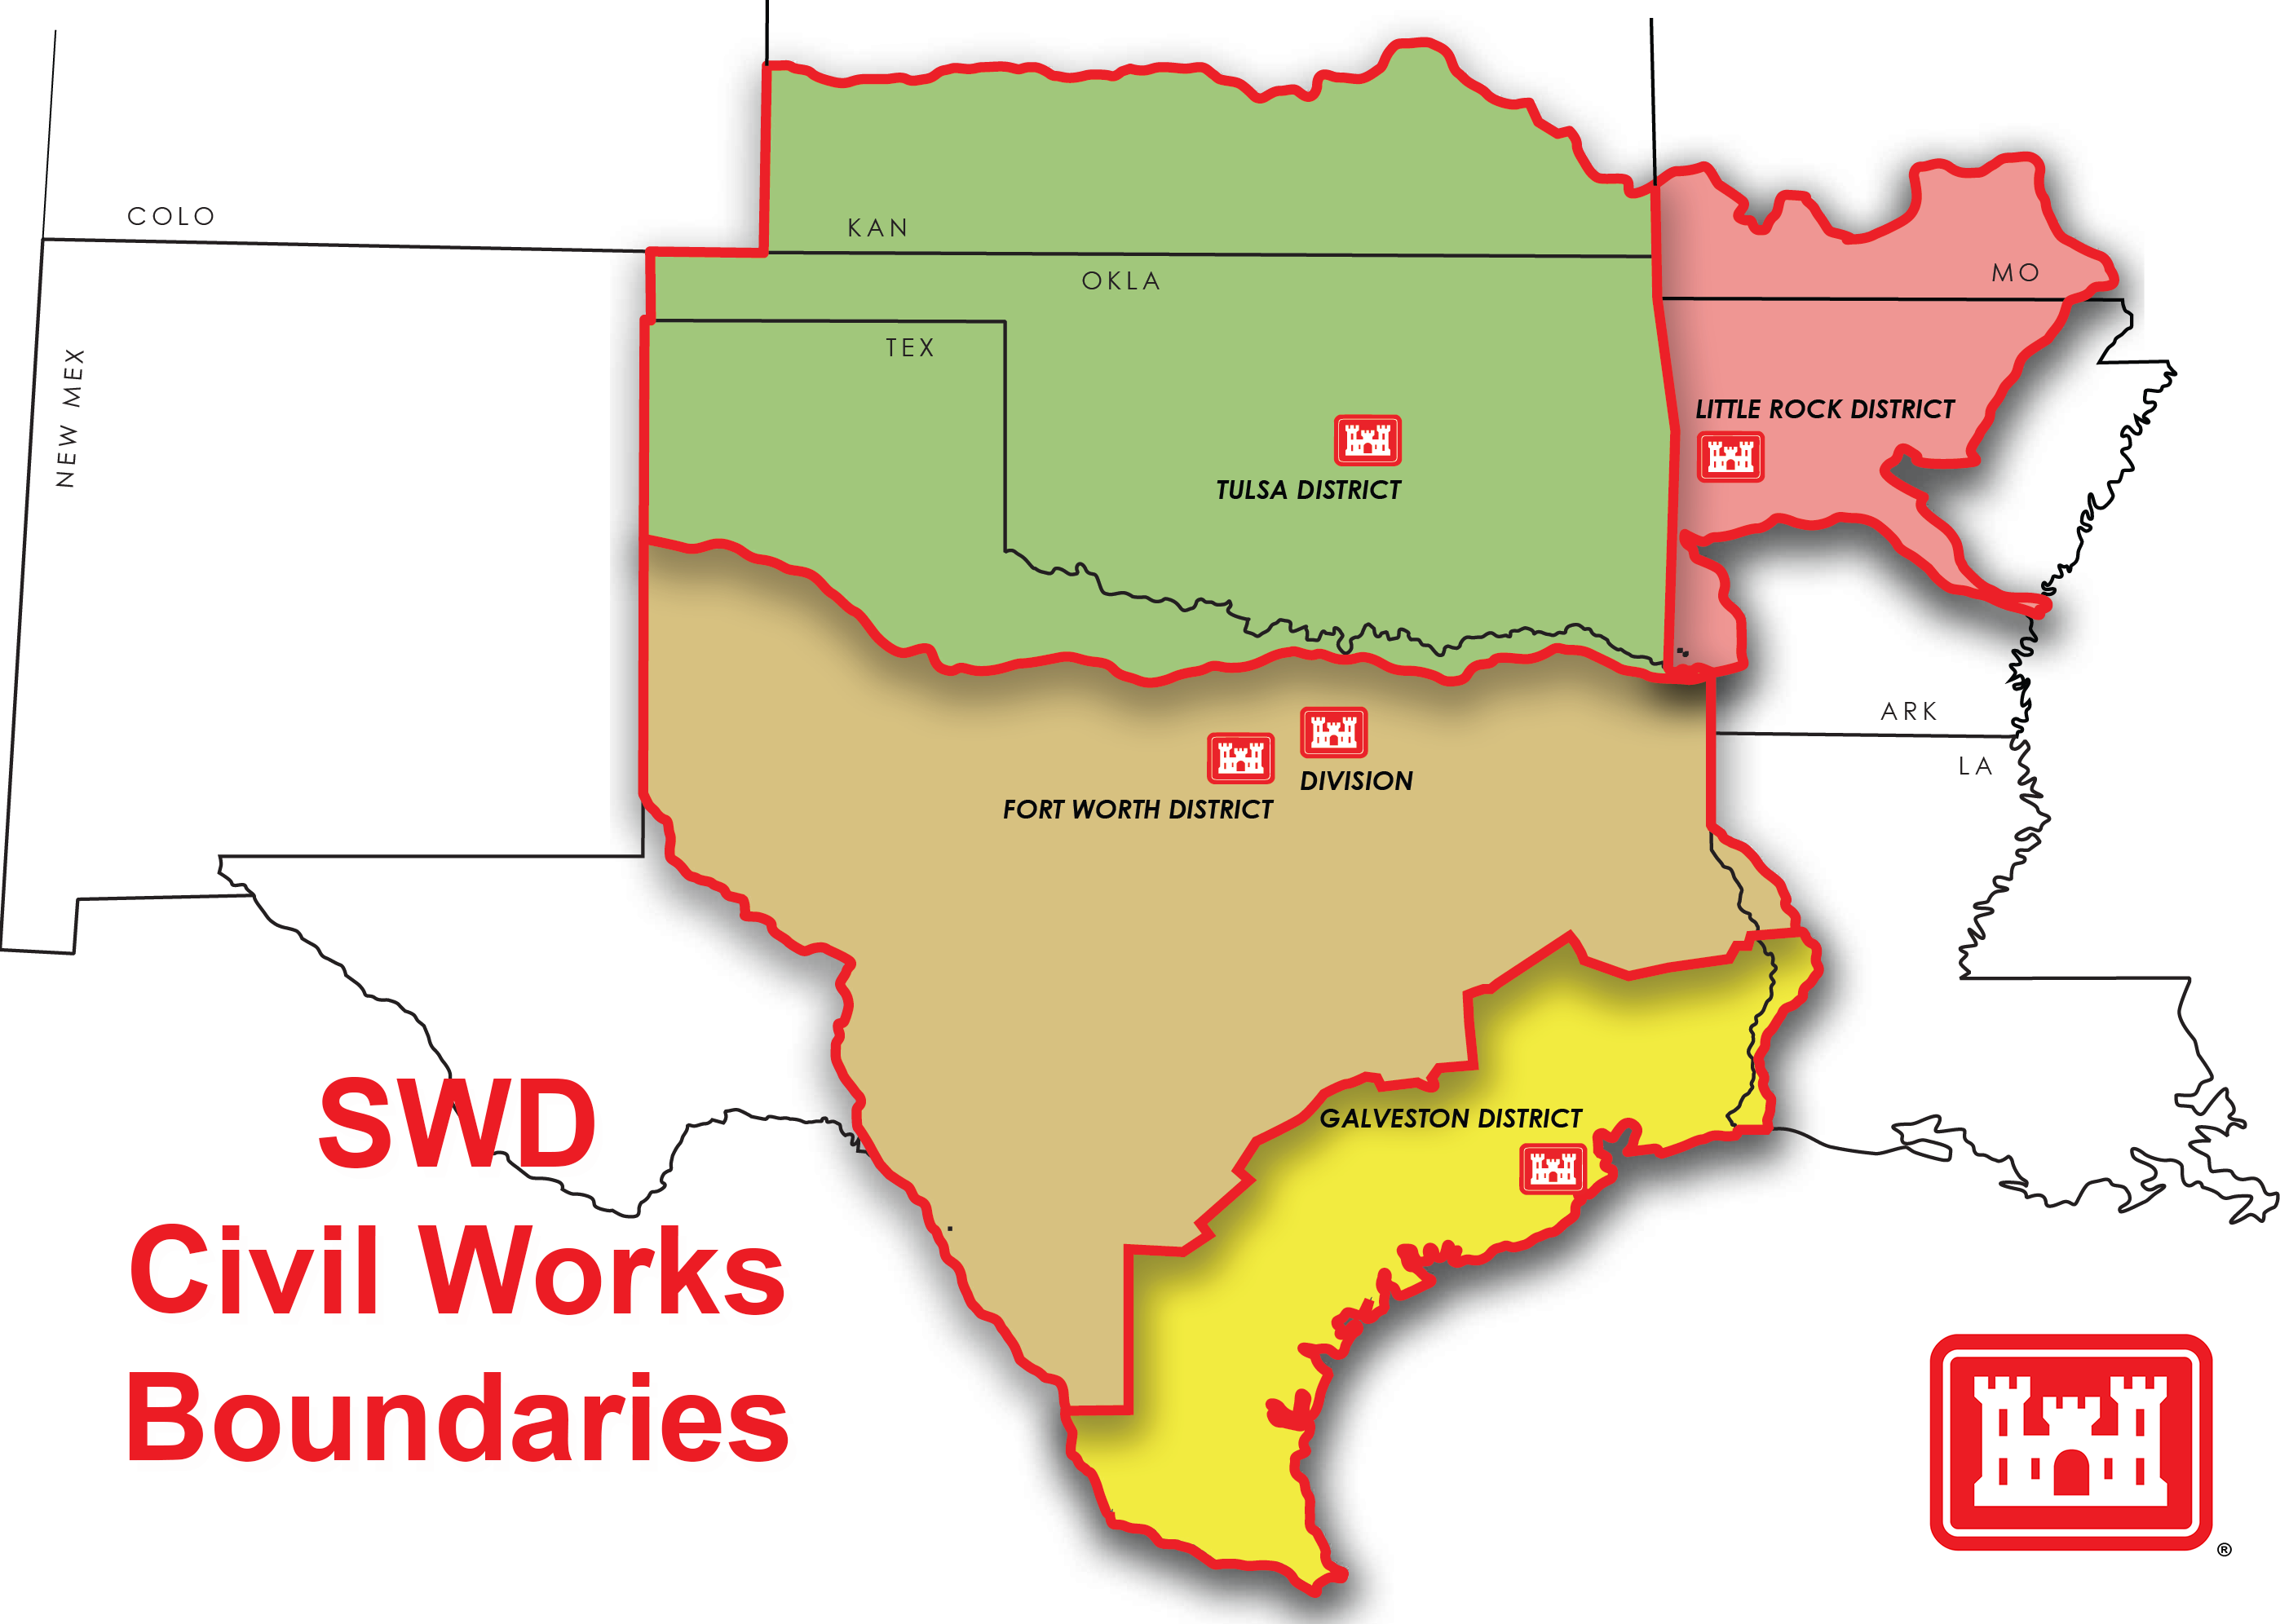 About the Southwestern Division